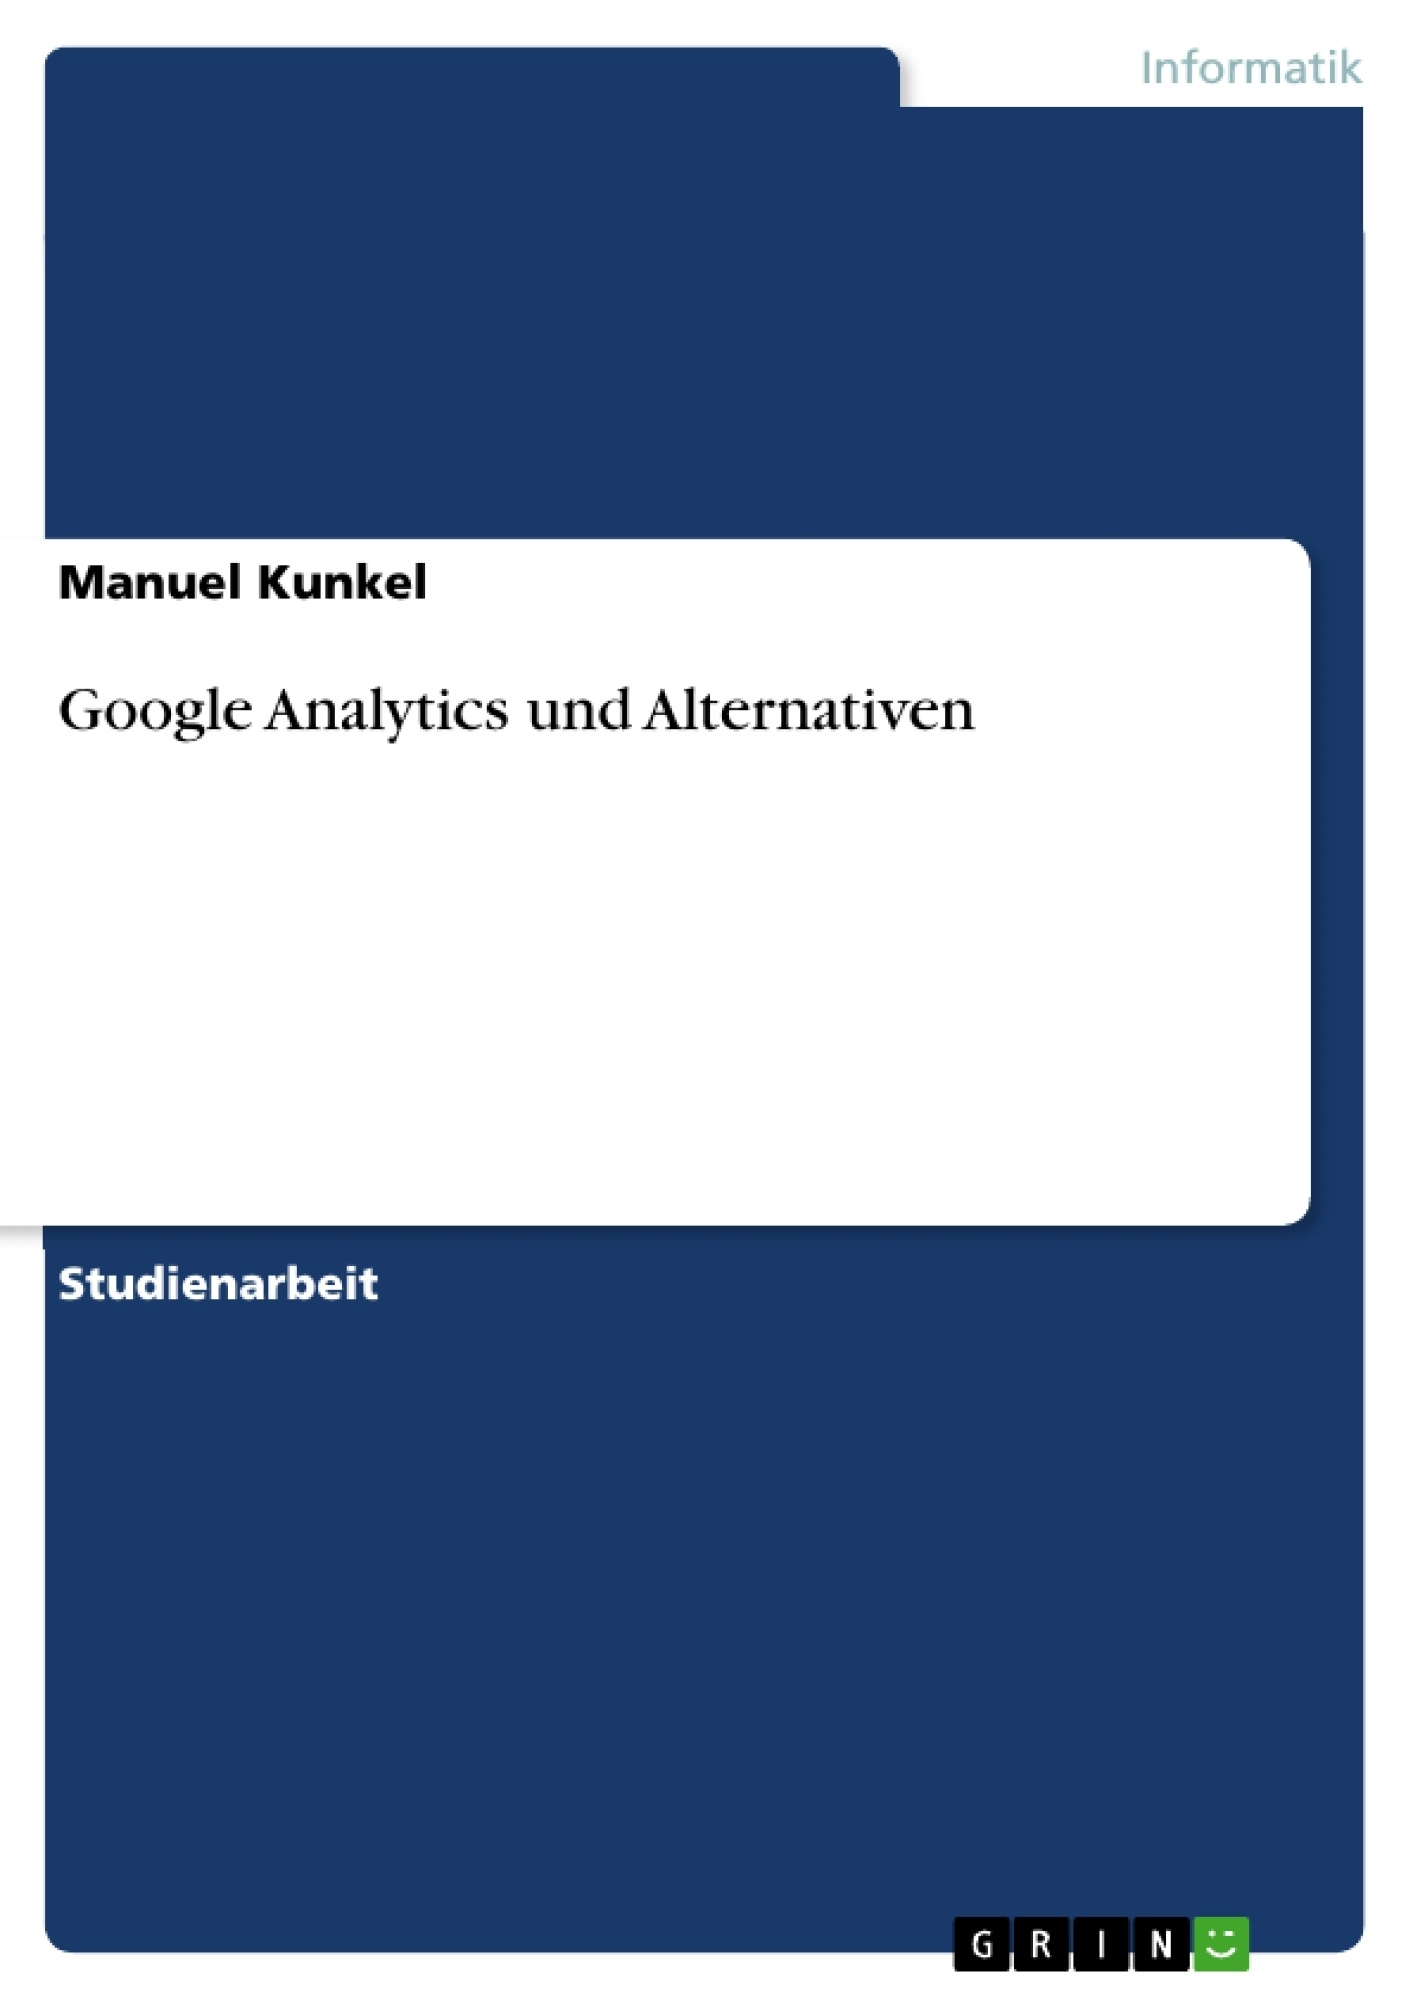 Titel: Google Analytics und Alternativen